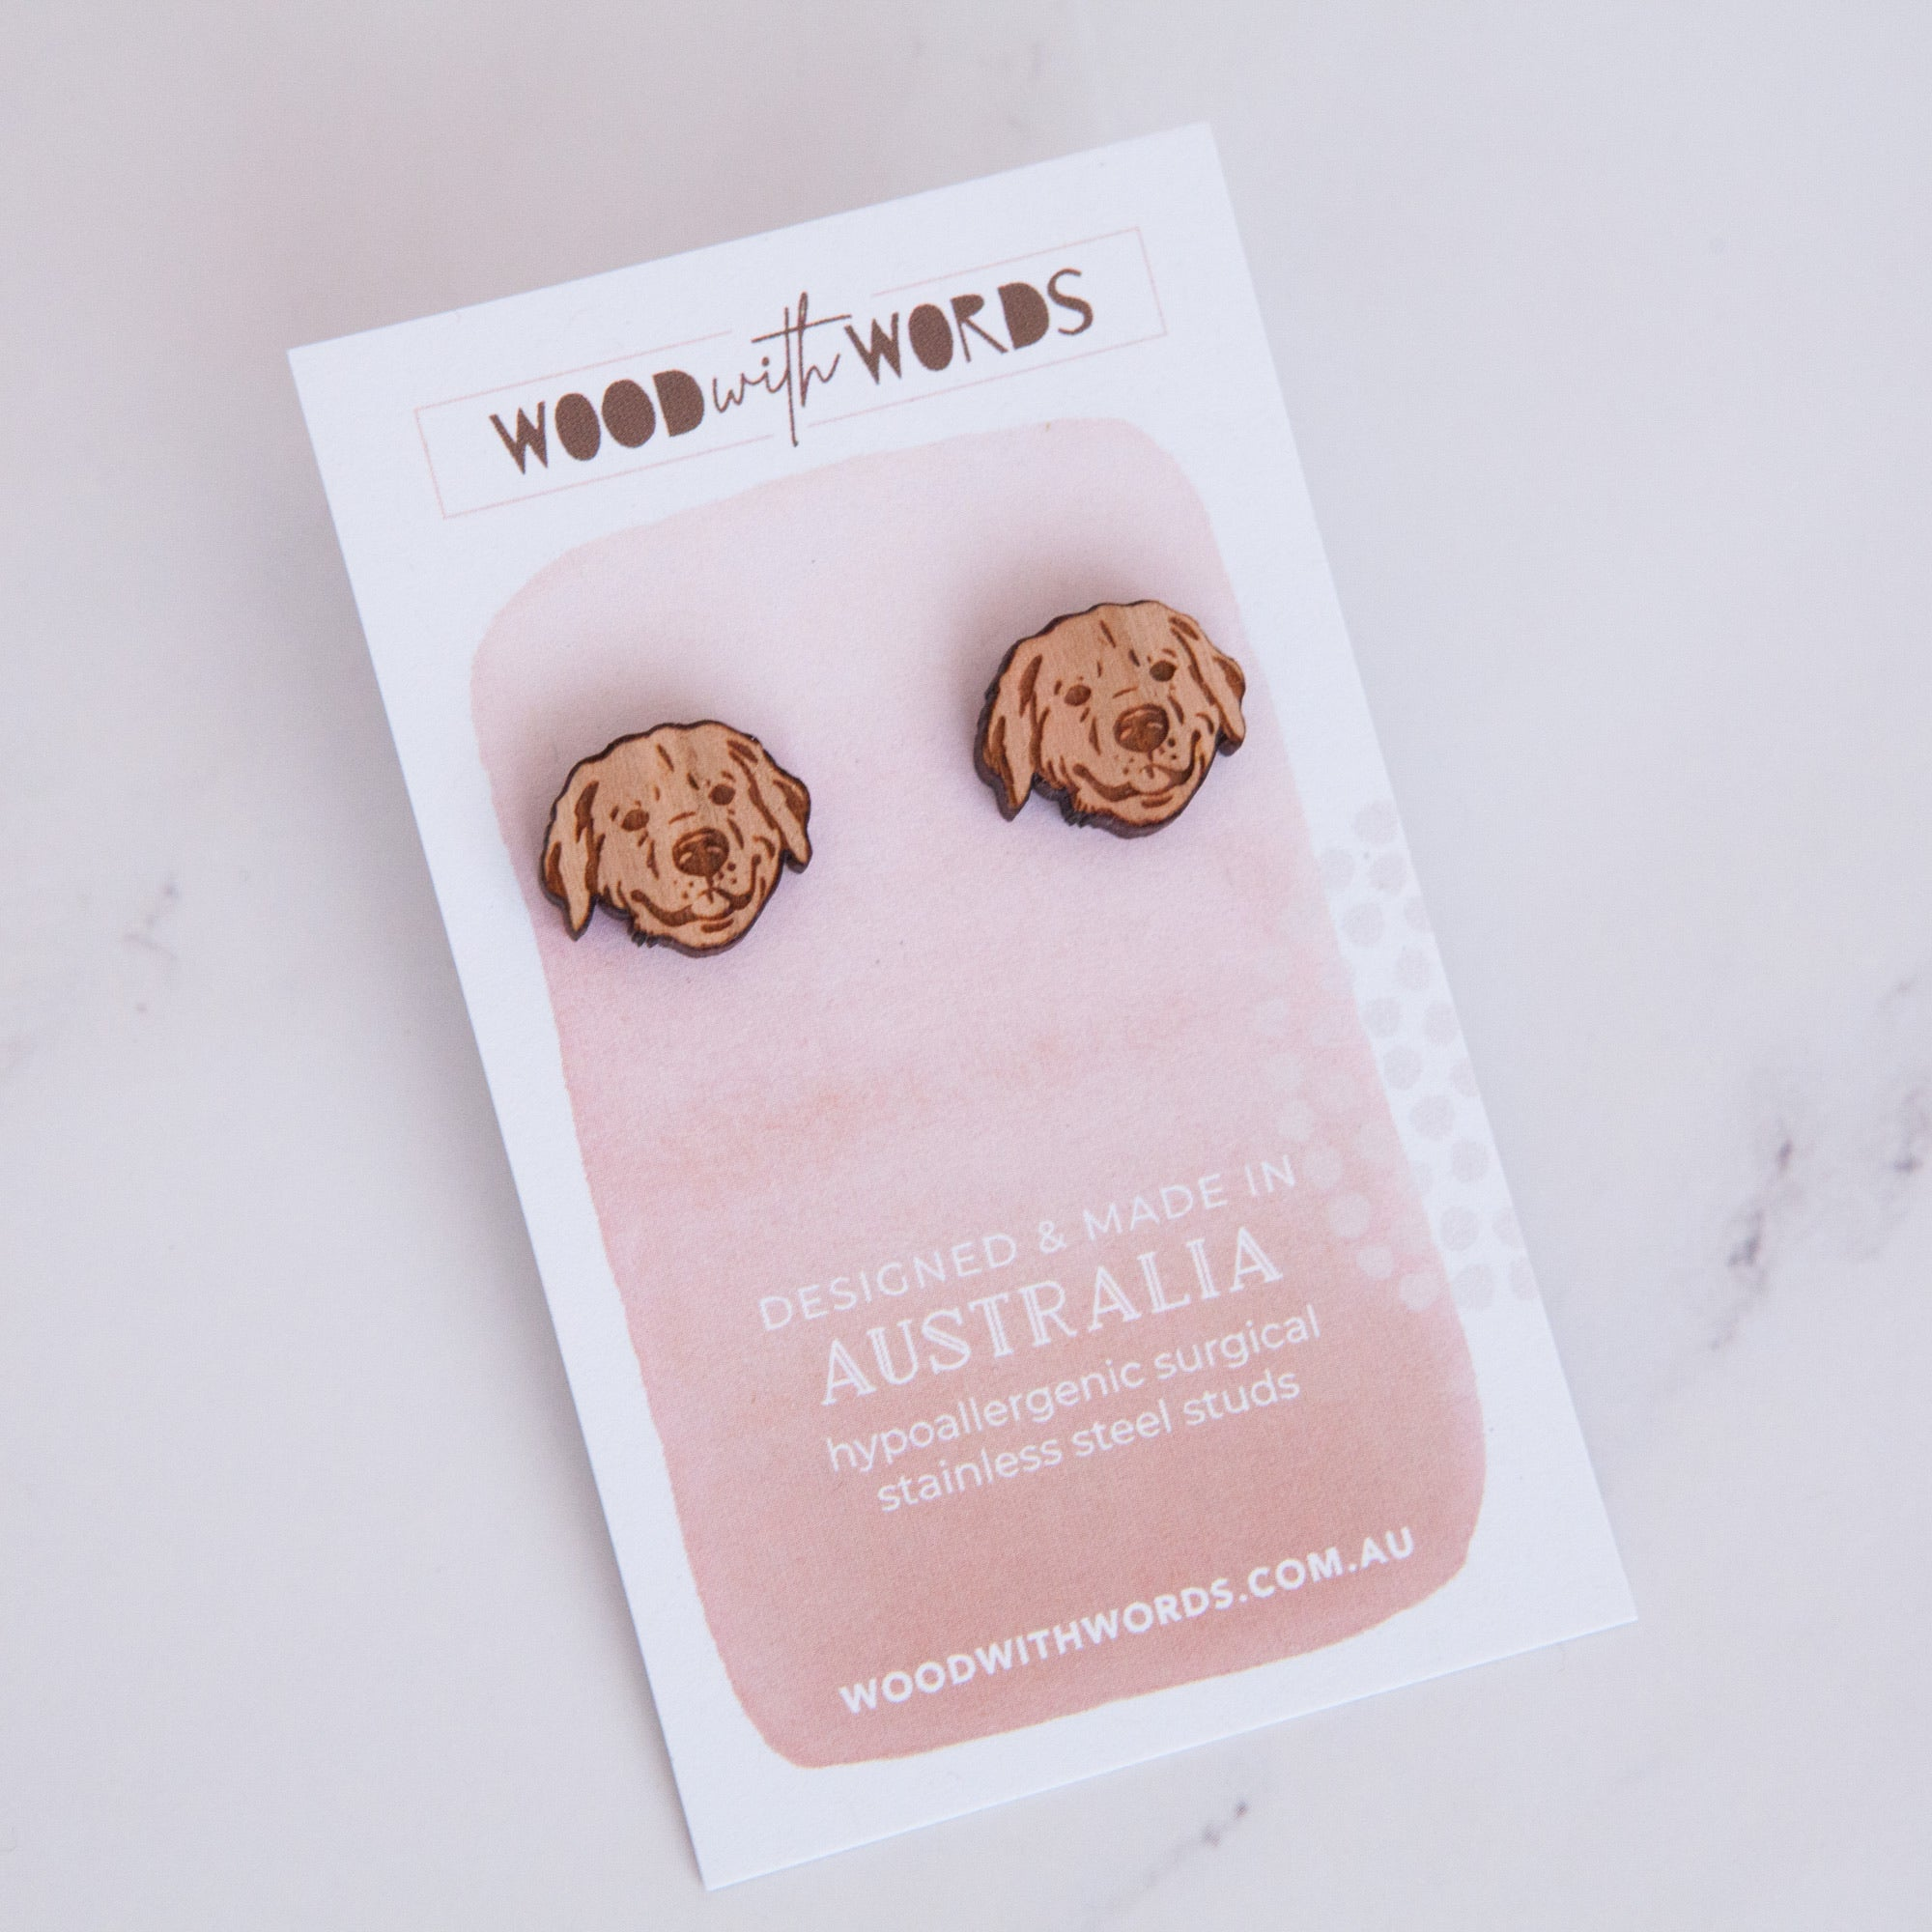 Golden Retriever Wooden Stud Earrings - Wood With Words